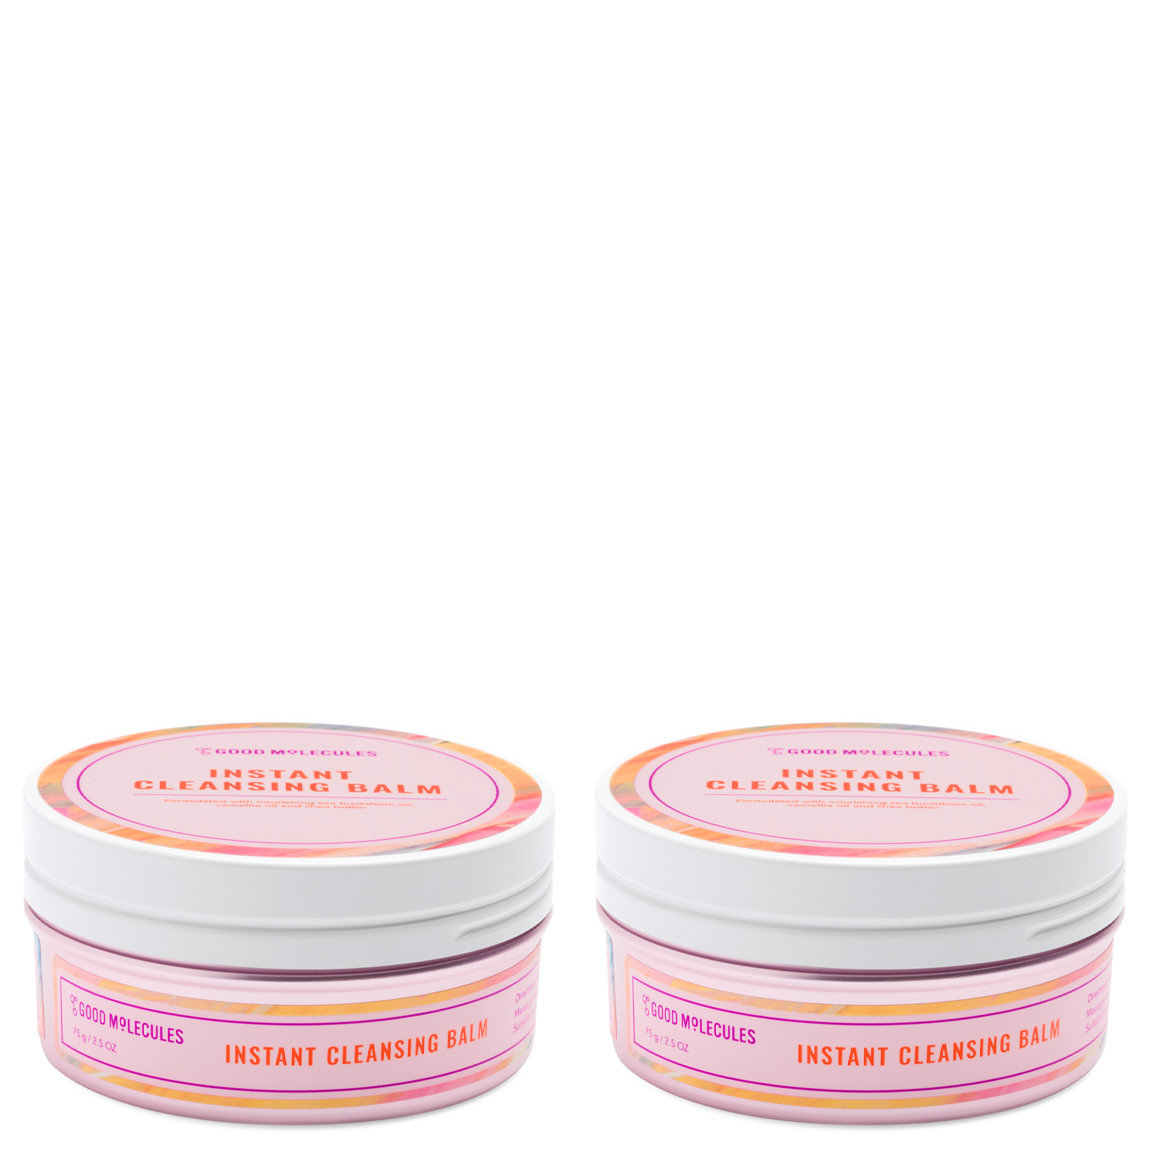 Good Molecules Instant Cleansing Balm 75 g Duo alternative view 1 - product swatch.